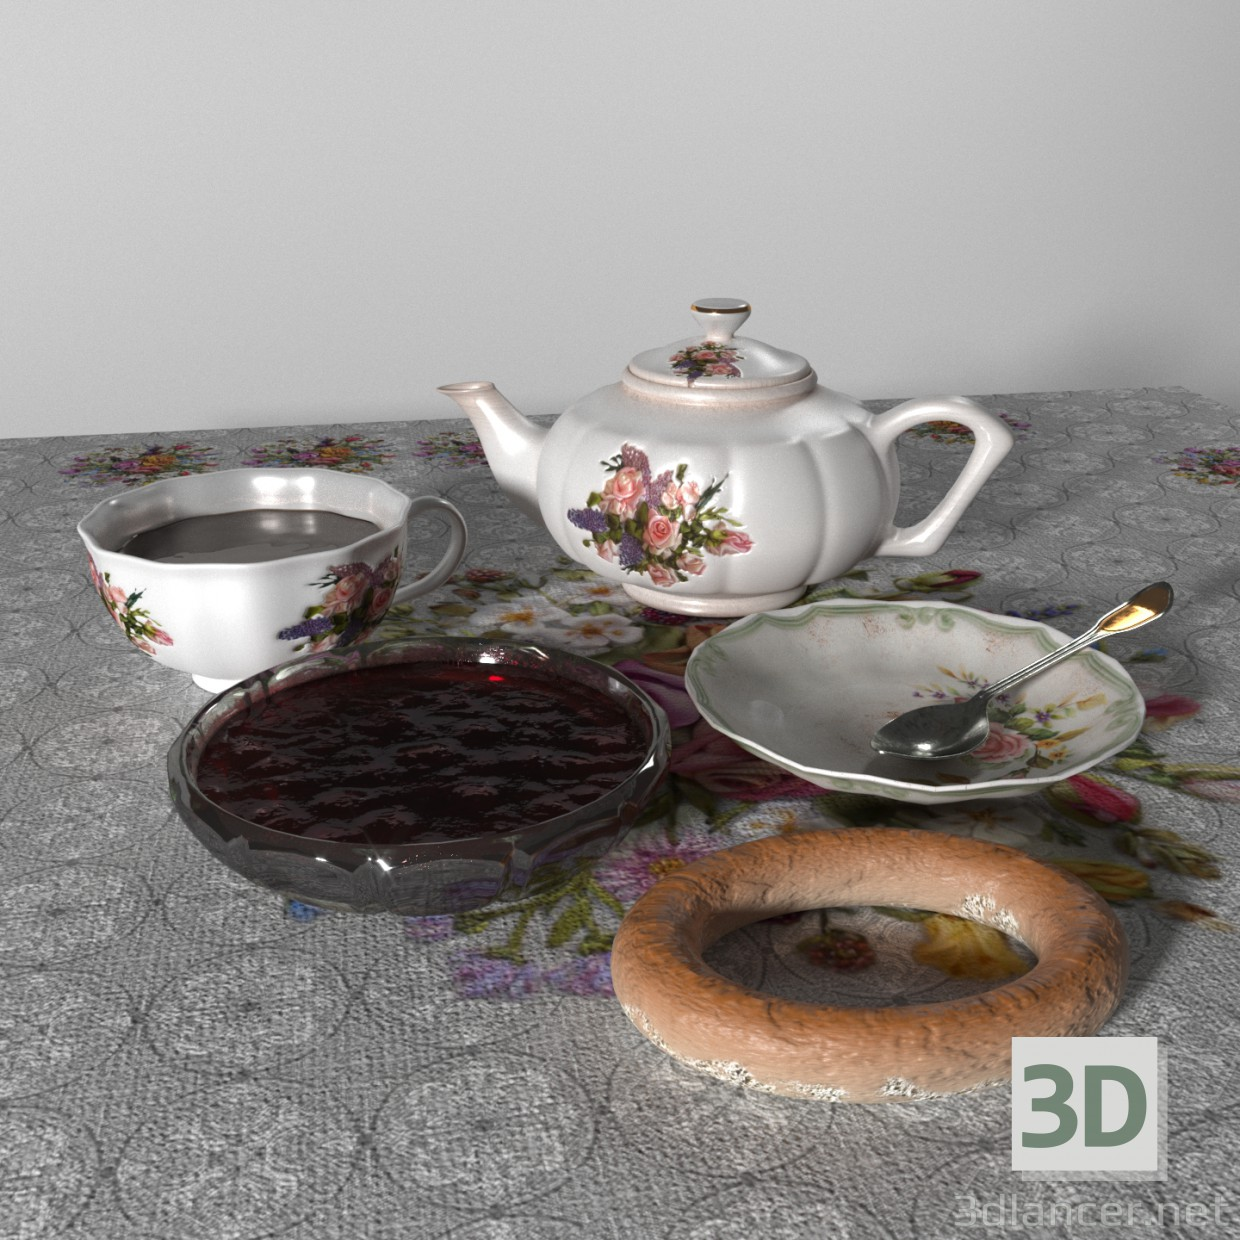 3d modeling Tea set model free download